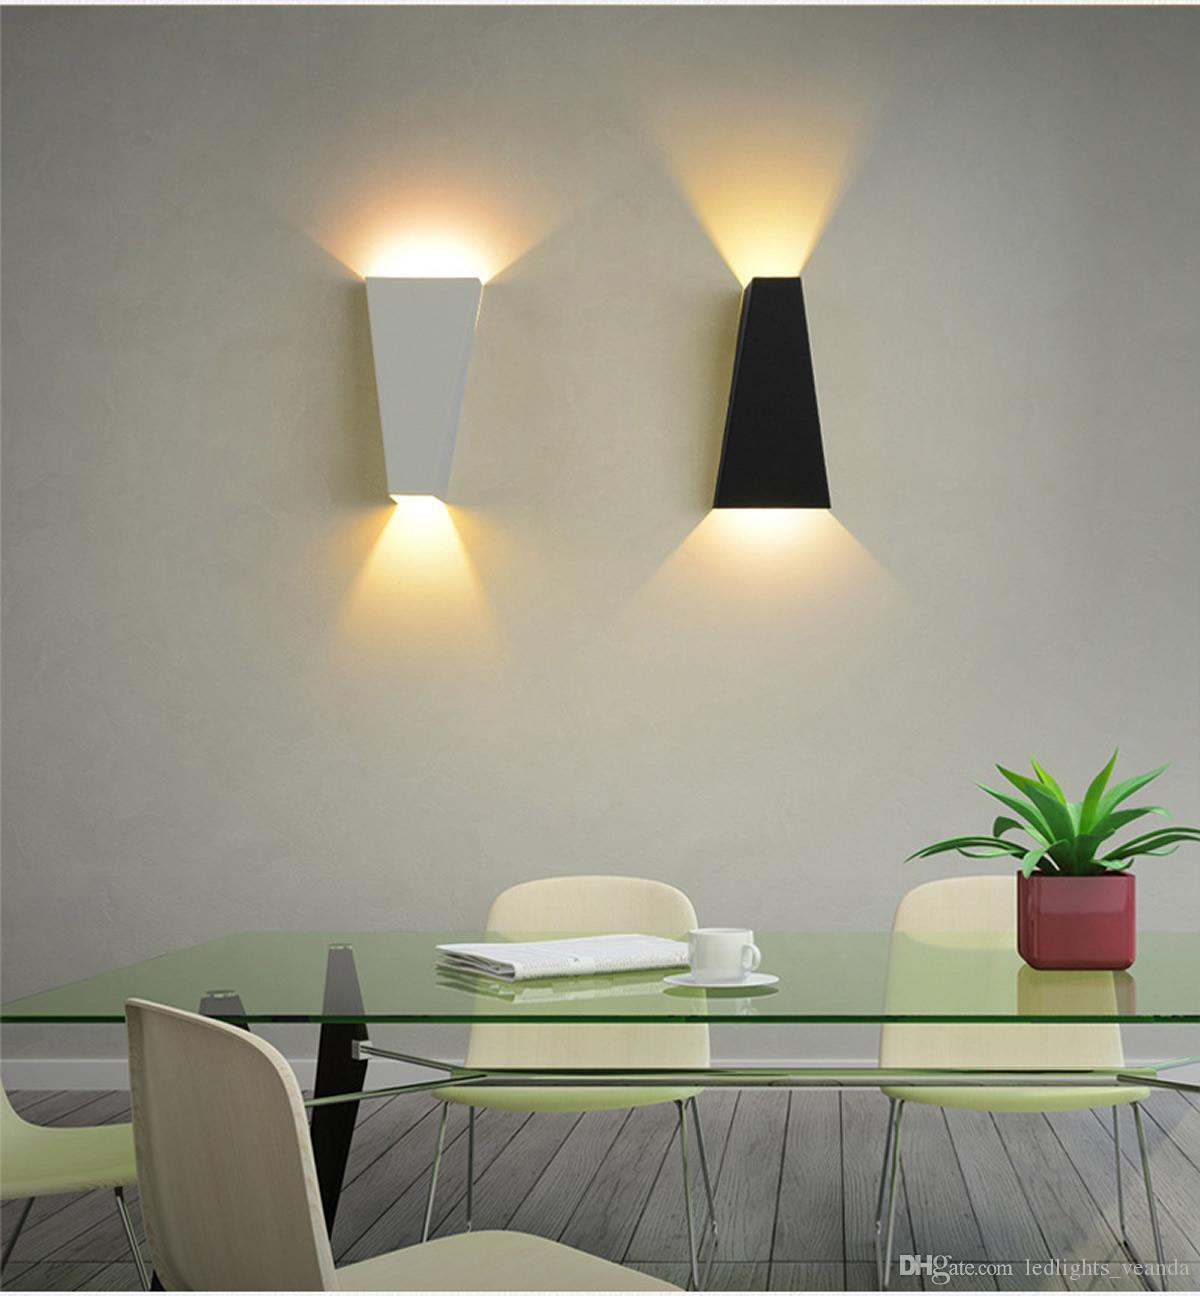 Fashion Furniture 6W LED Wall Lamps for Bedside Lights Night ...